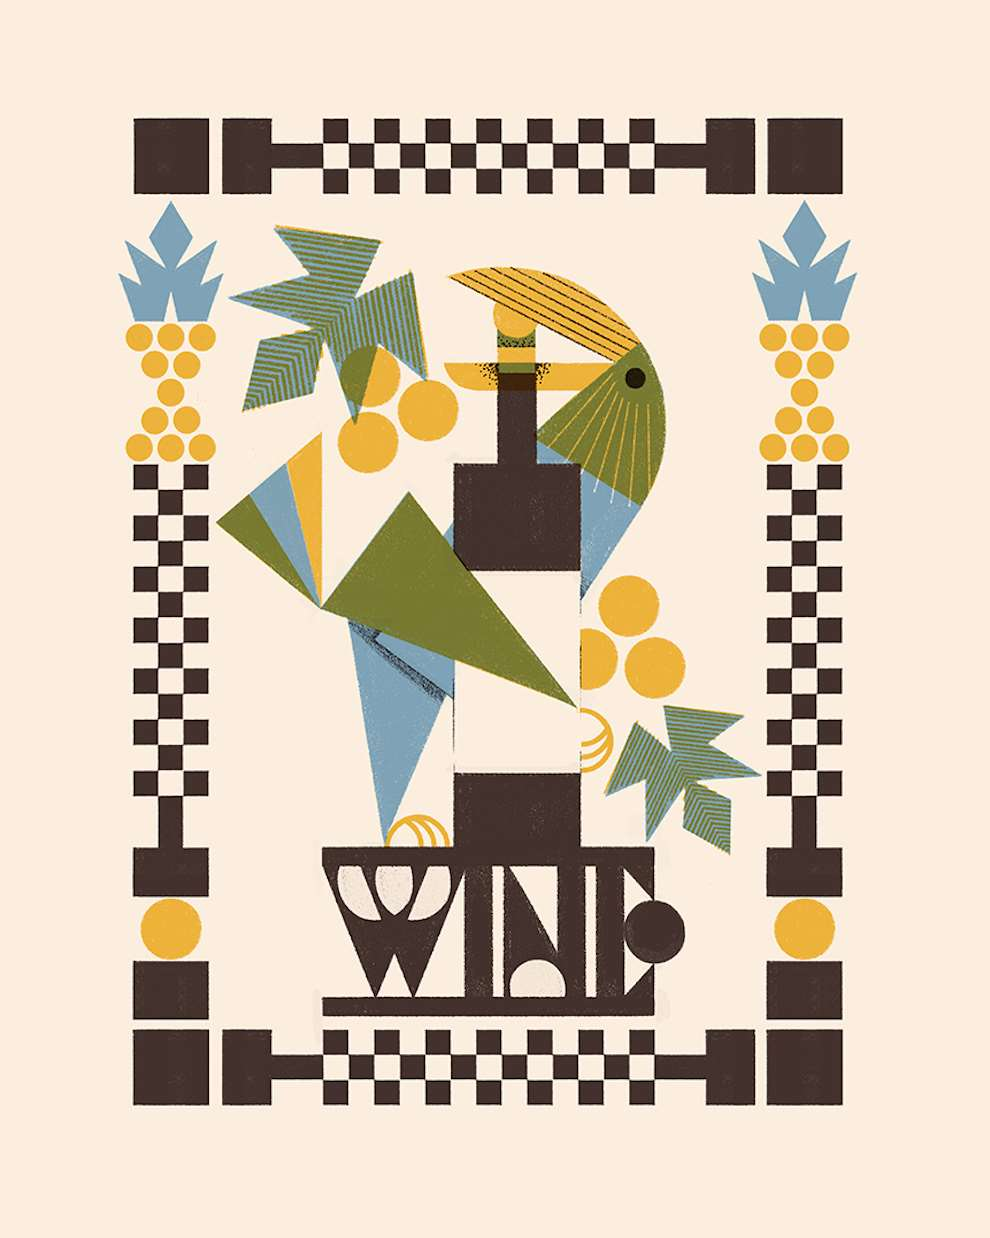 Marcos Farina, Bright and playful humorous digital illustration using limited blue, green and yellow colour palette.  Parrot posing on a wine bottle surrounded by decorative elements